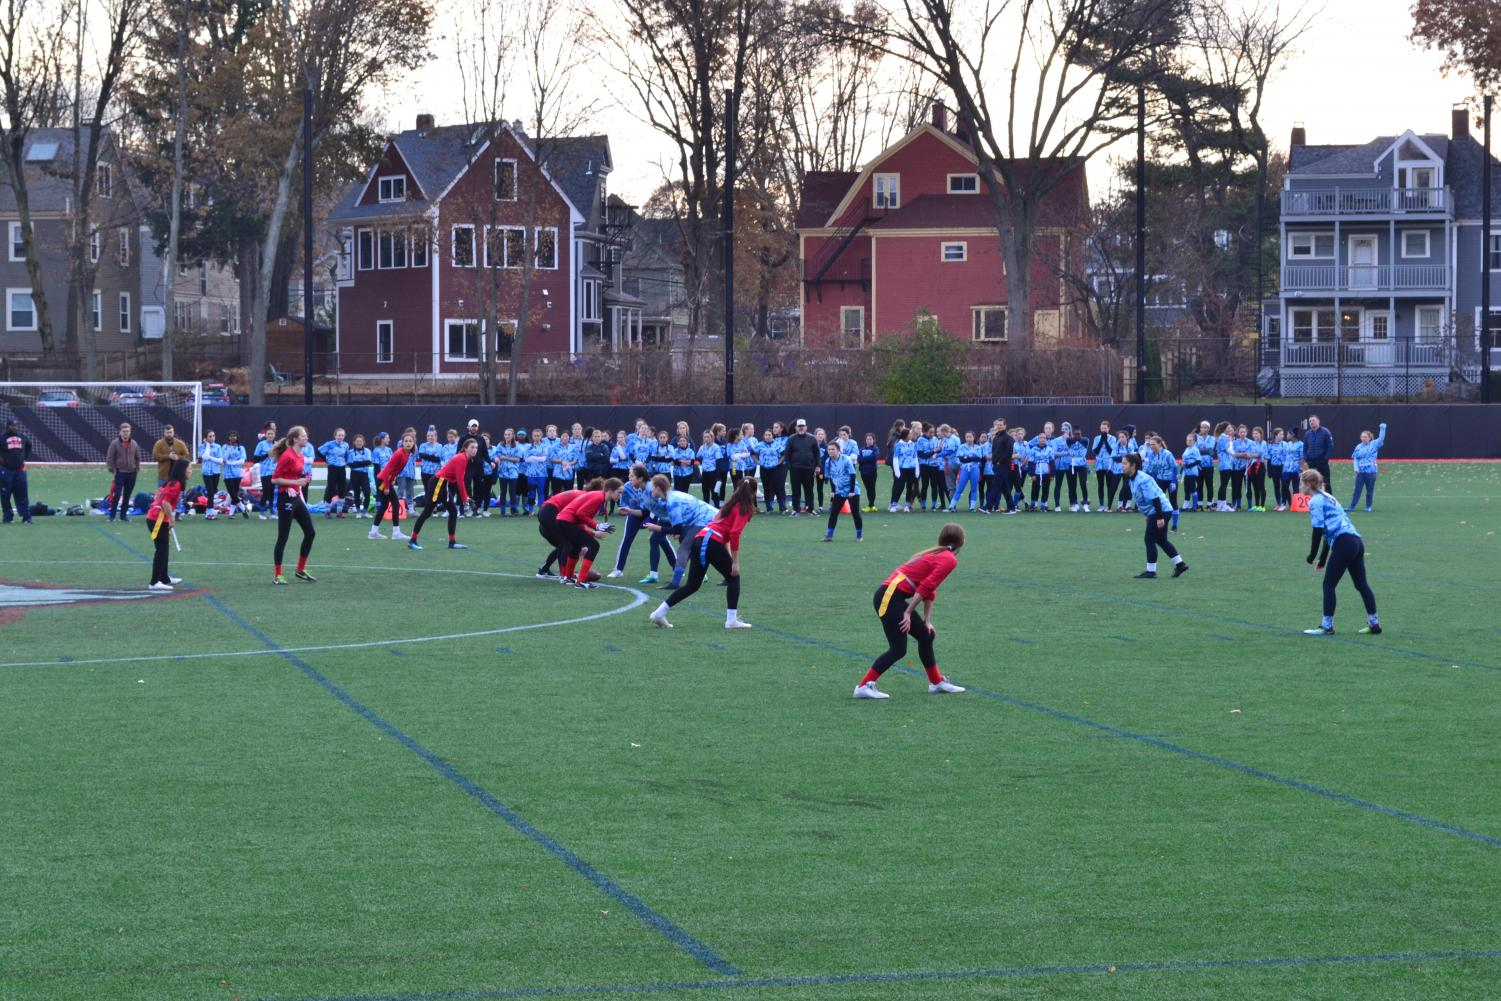 After an early touchdown by the blue team, the red team came back with a decisive 18-6 victory in this year's Powderpuff girls flag football game.